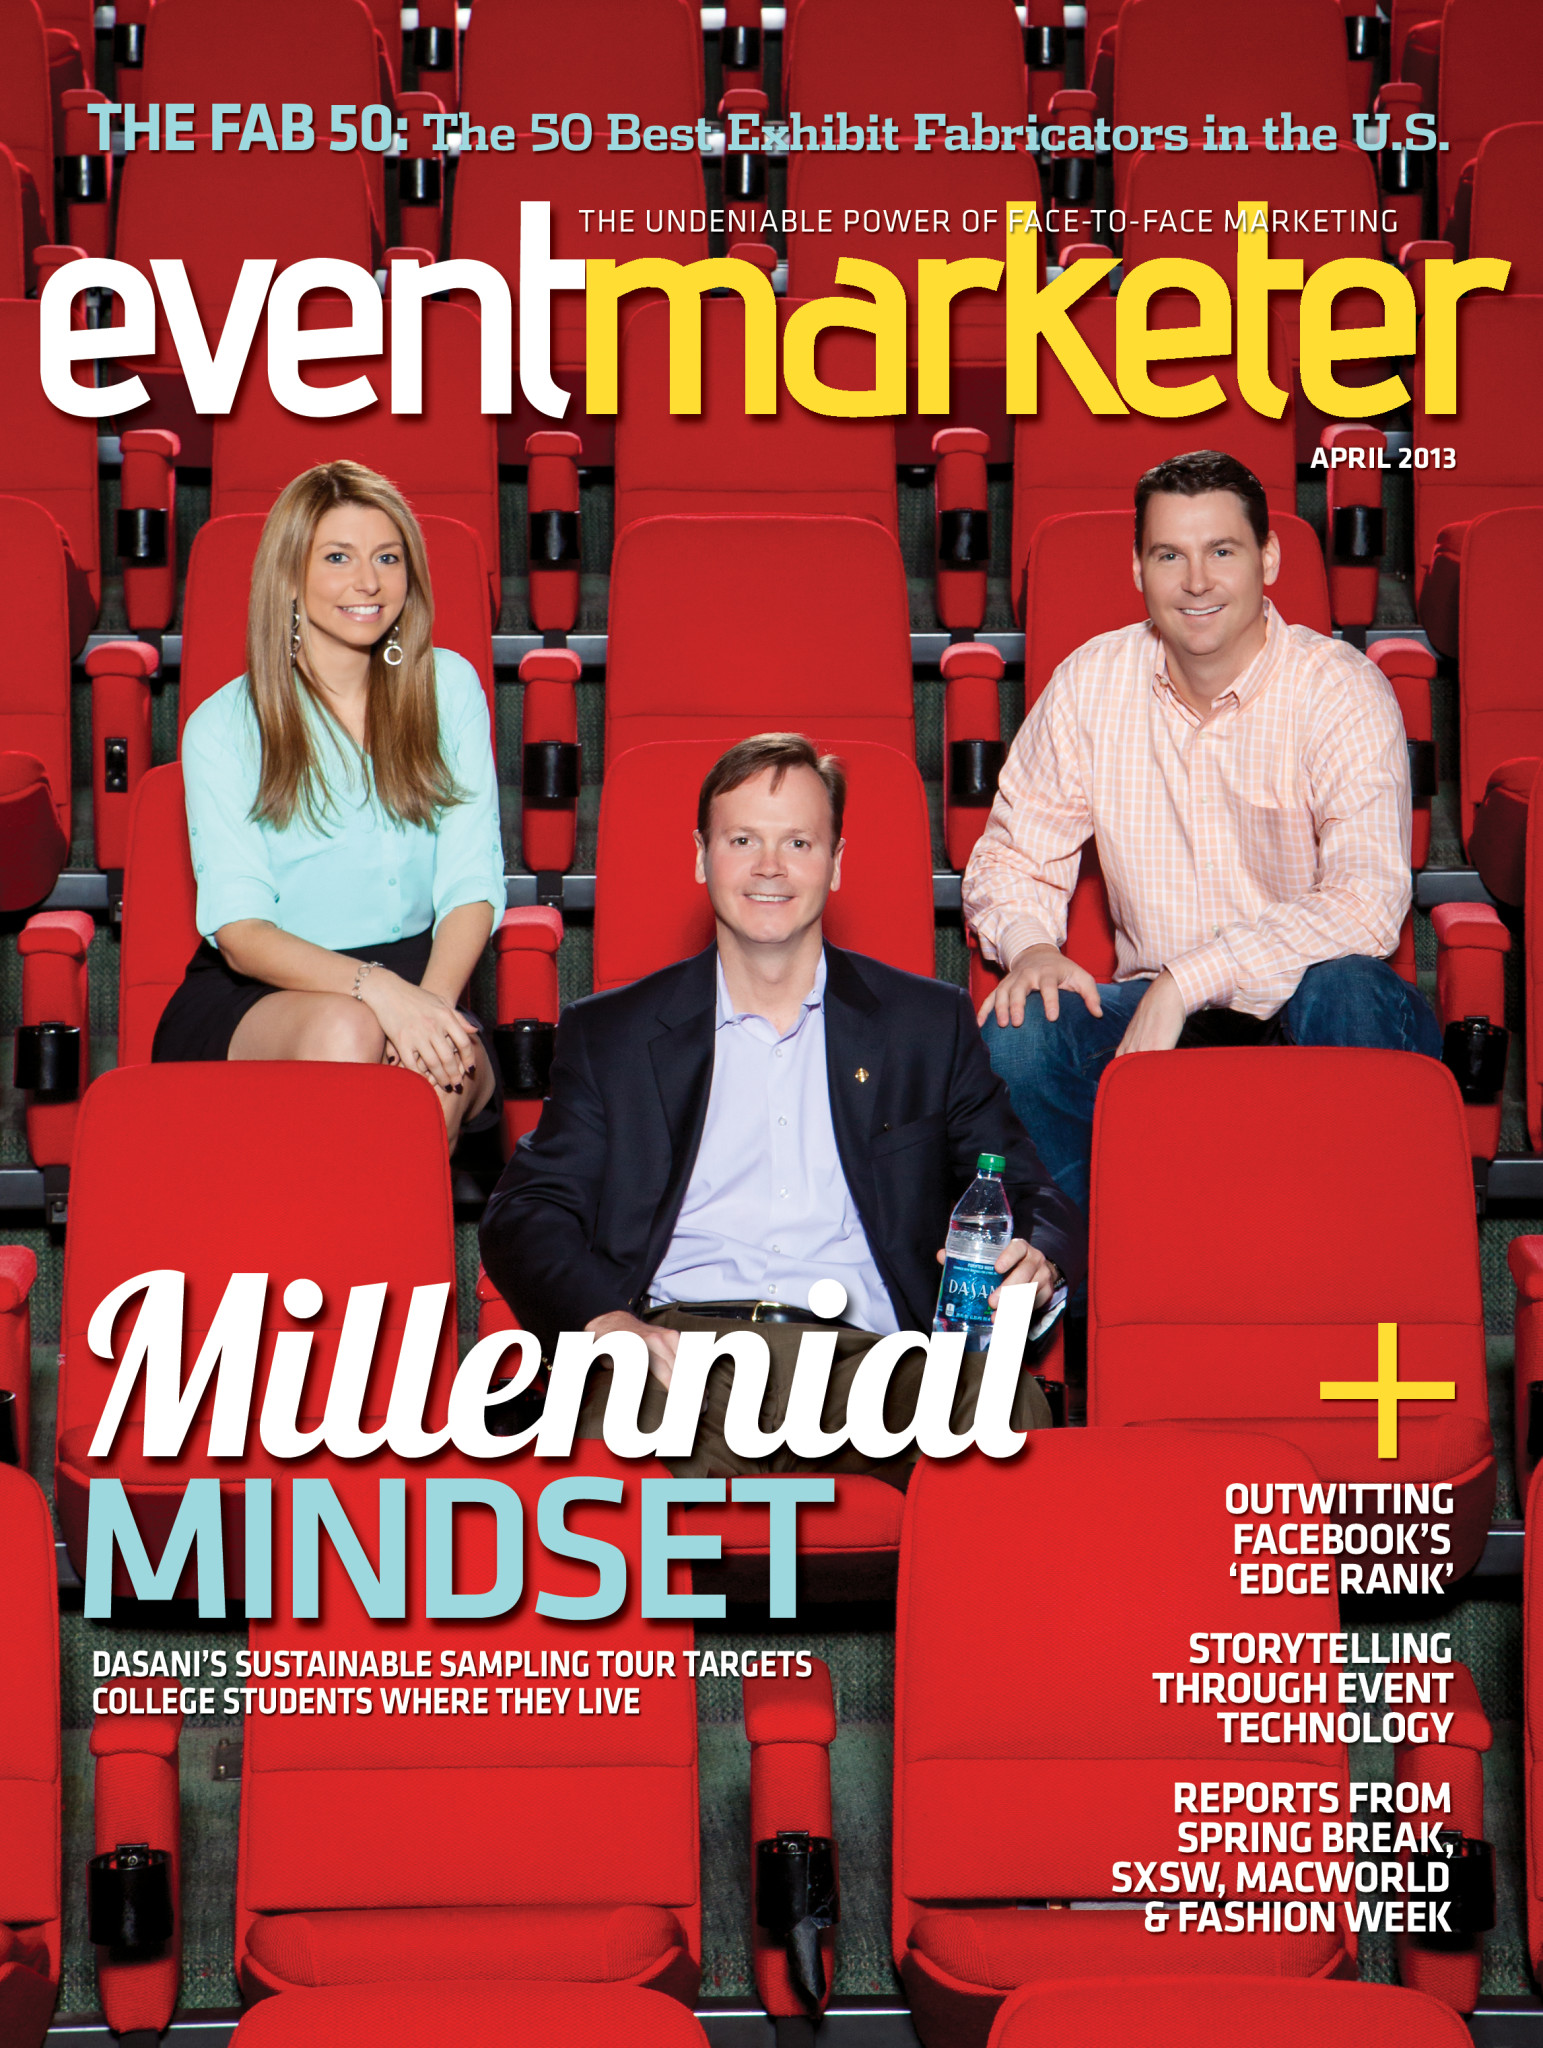 Event Marketer April 2013 Issue